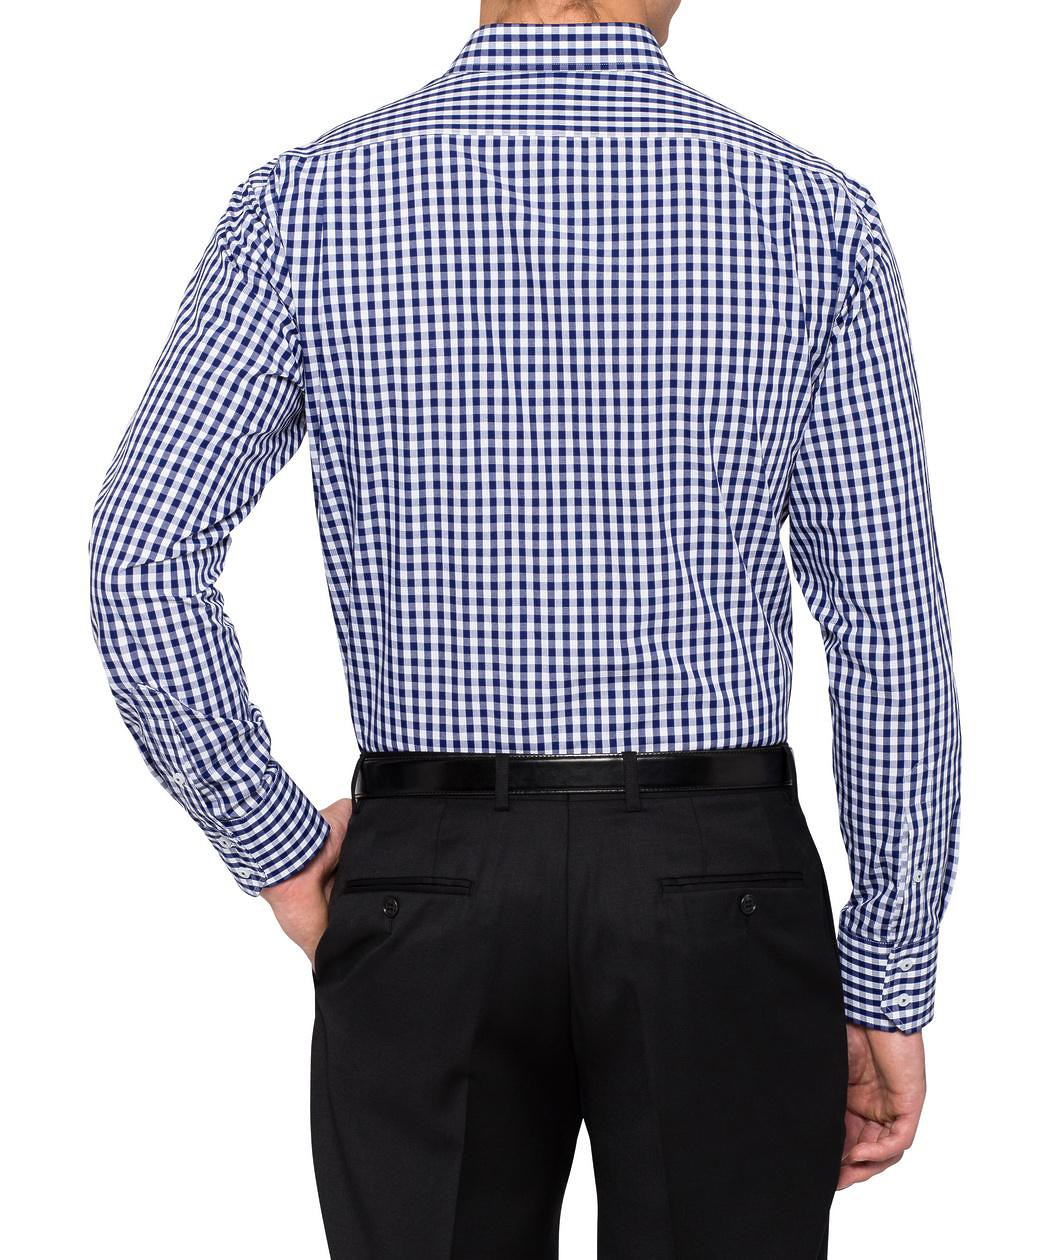 The other cool thing about Van Heusen is that if you see an item in store that is not the right size, have the store right down the Class #, Style Number and Size and you can call Van Heusen Customer Service (Mon-Fri: pm EST) and you can order it at same price and have it shipped to you for only $6, no sales tax and they will 4/ Yelp reviews.